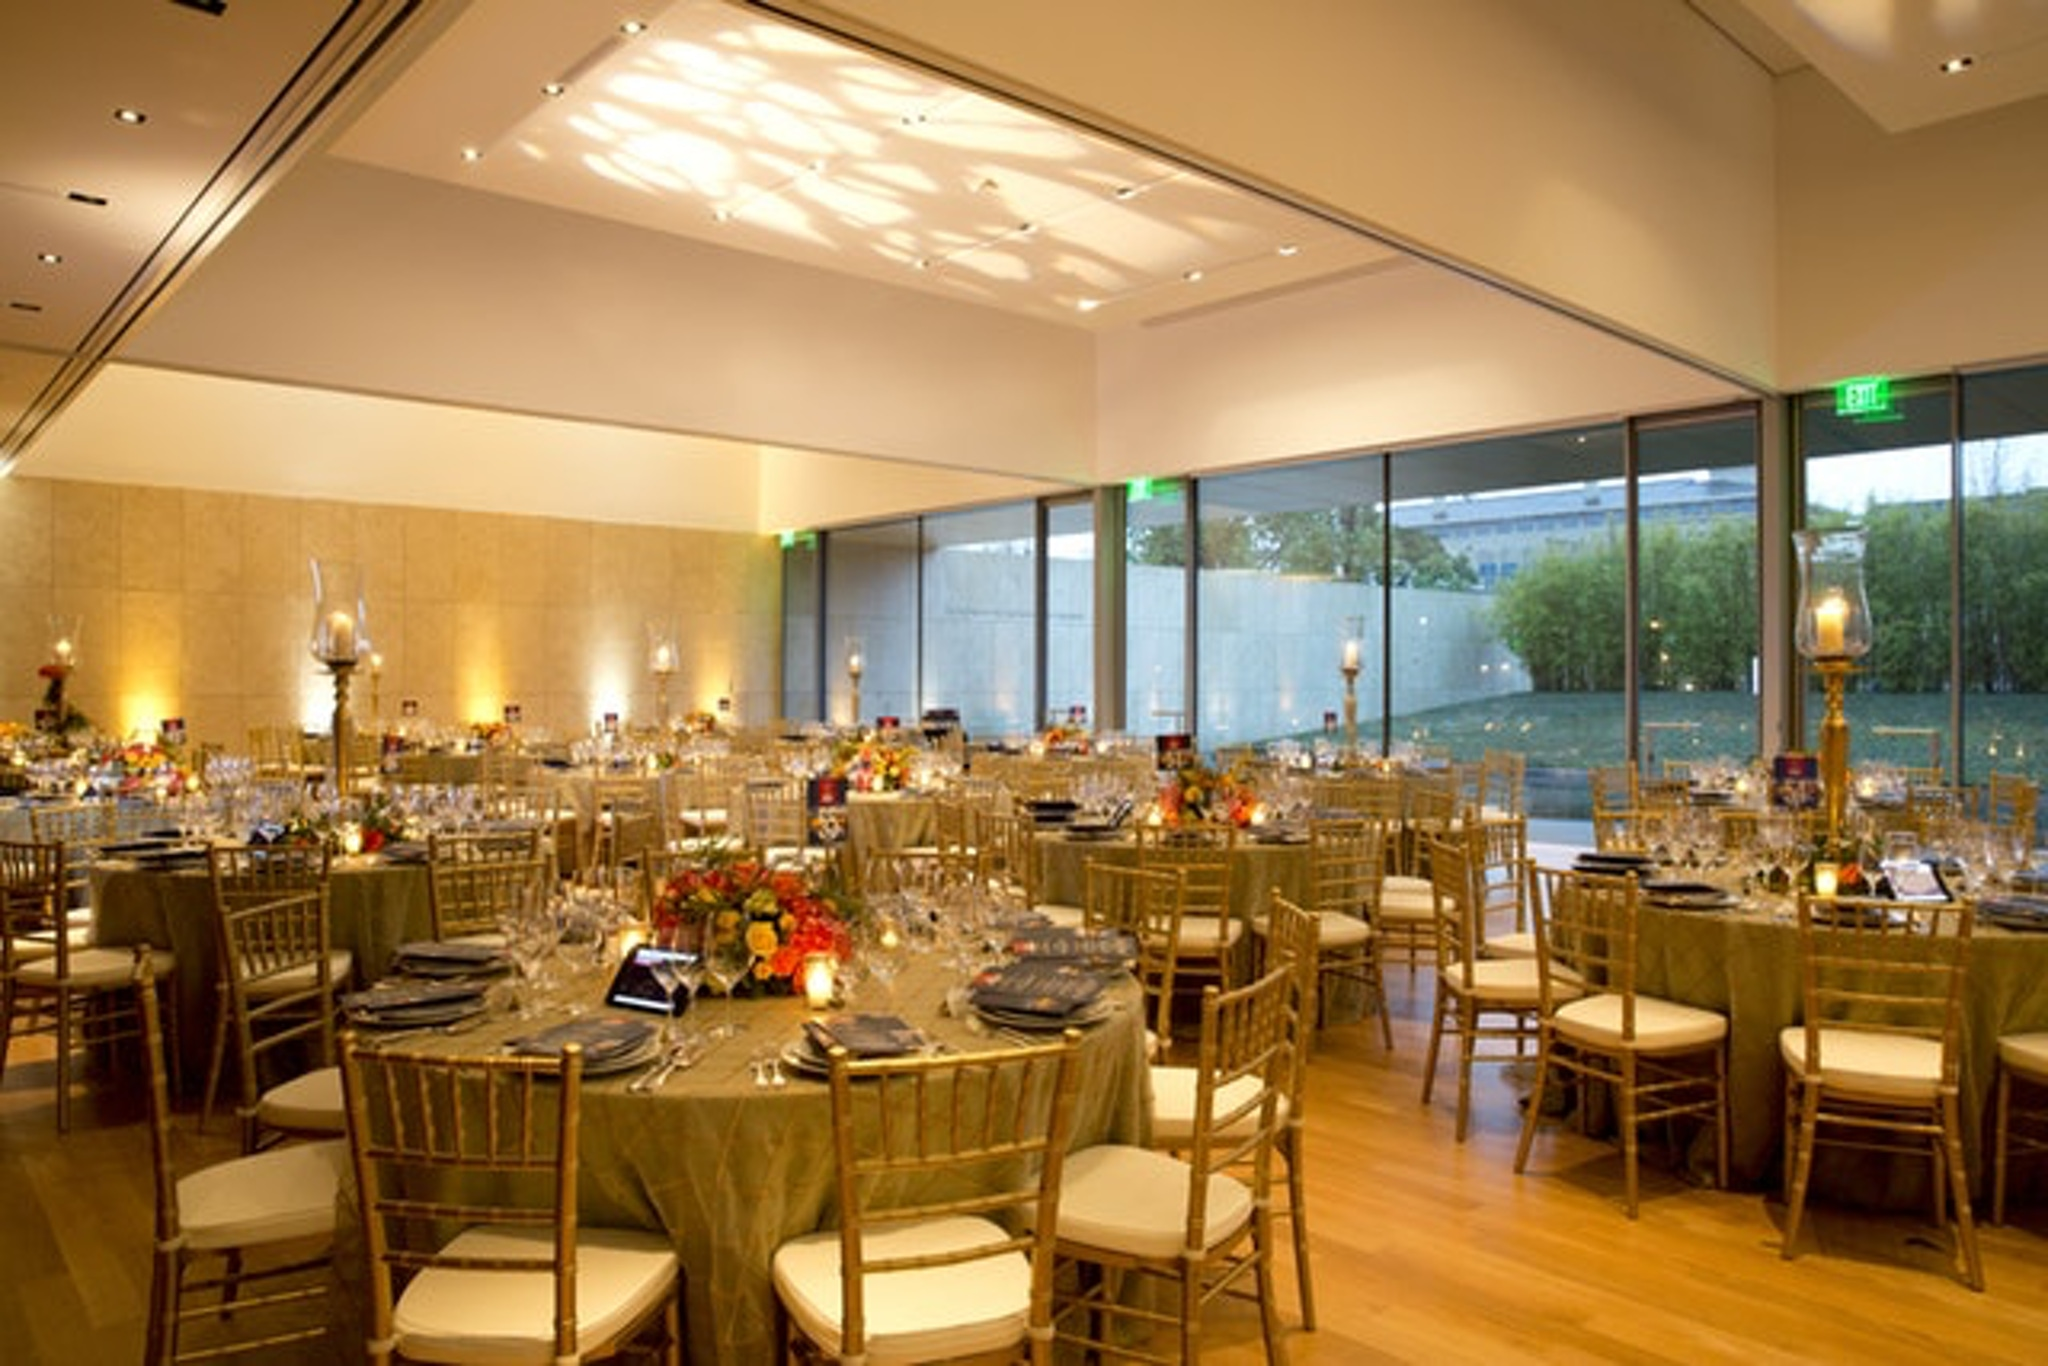 Gold chairs and table scape at Asia Society Texas Center